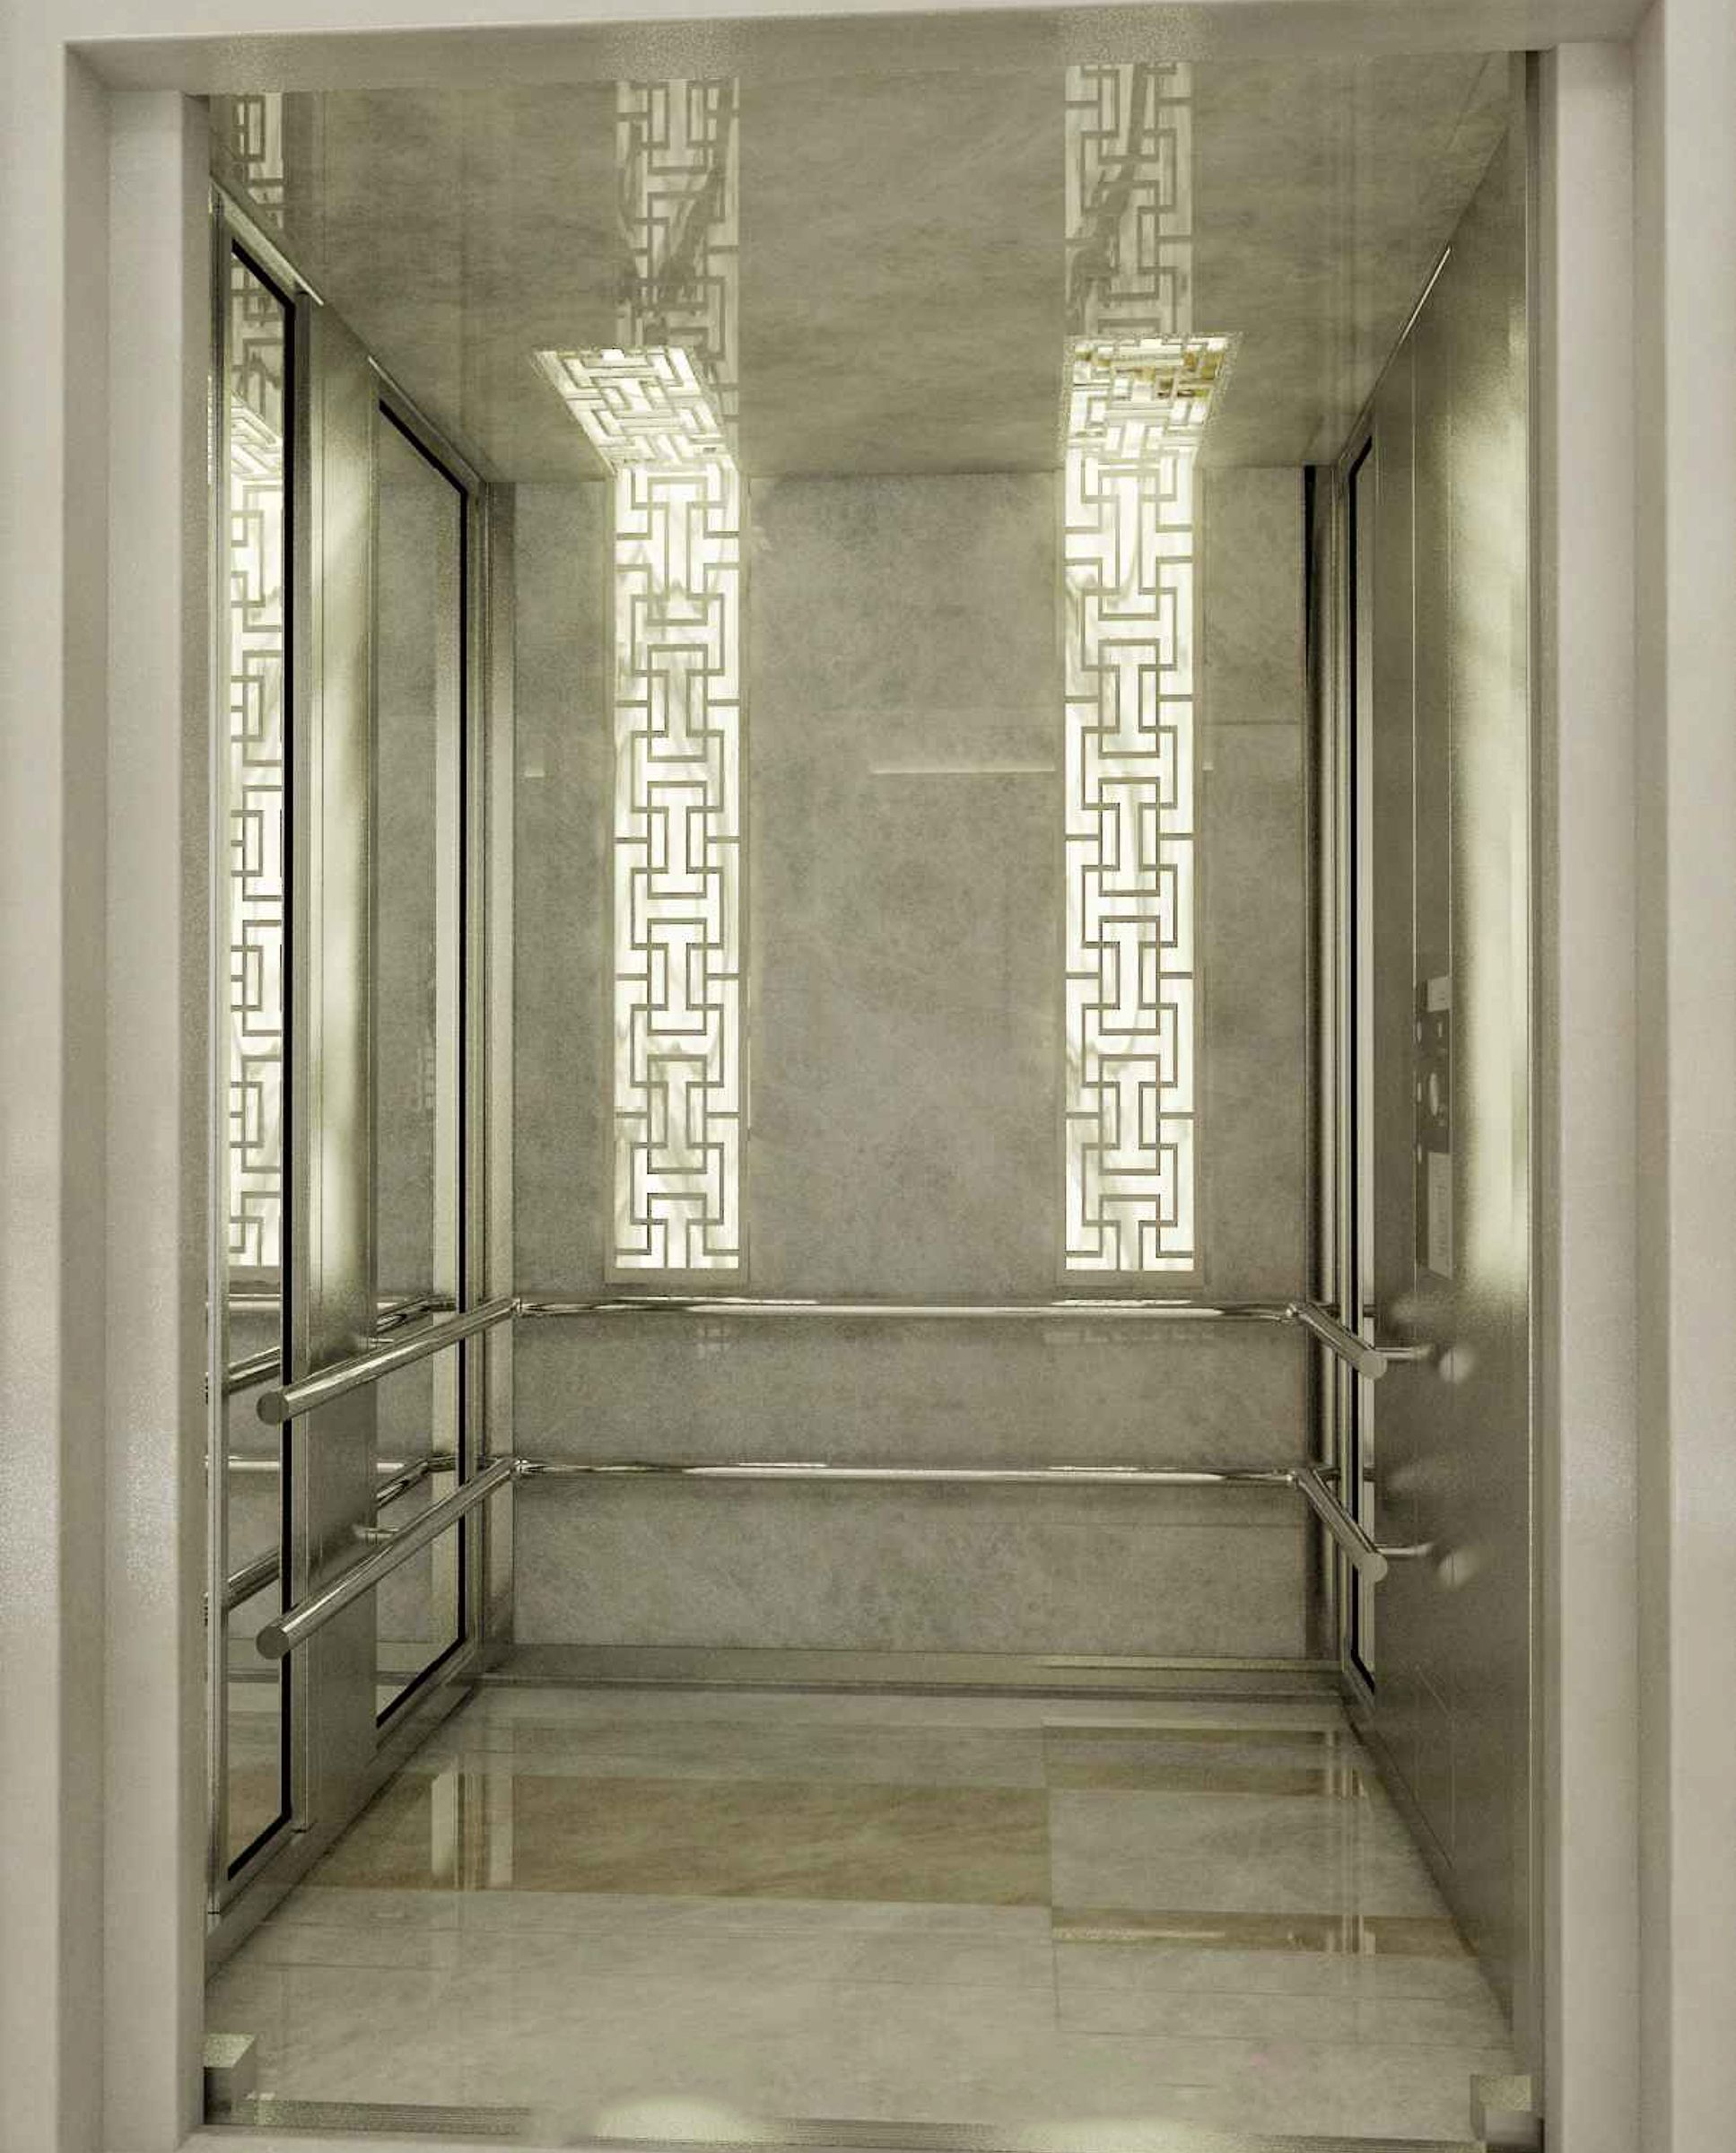 Stone U0026 Ceiling To Wall Integrated Lighting. Elevator DesignHotel DecorCar  InteriorsCnc ...